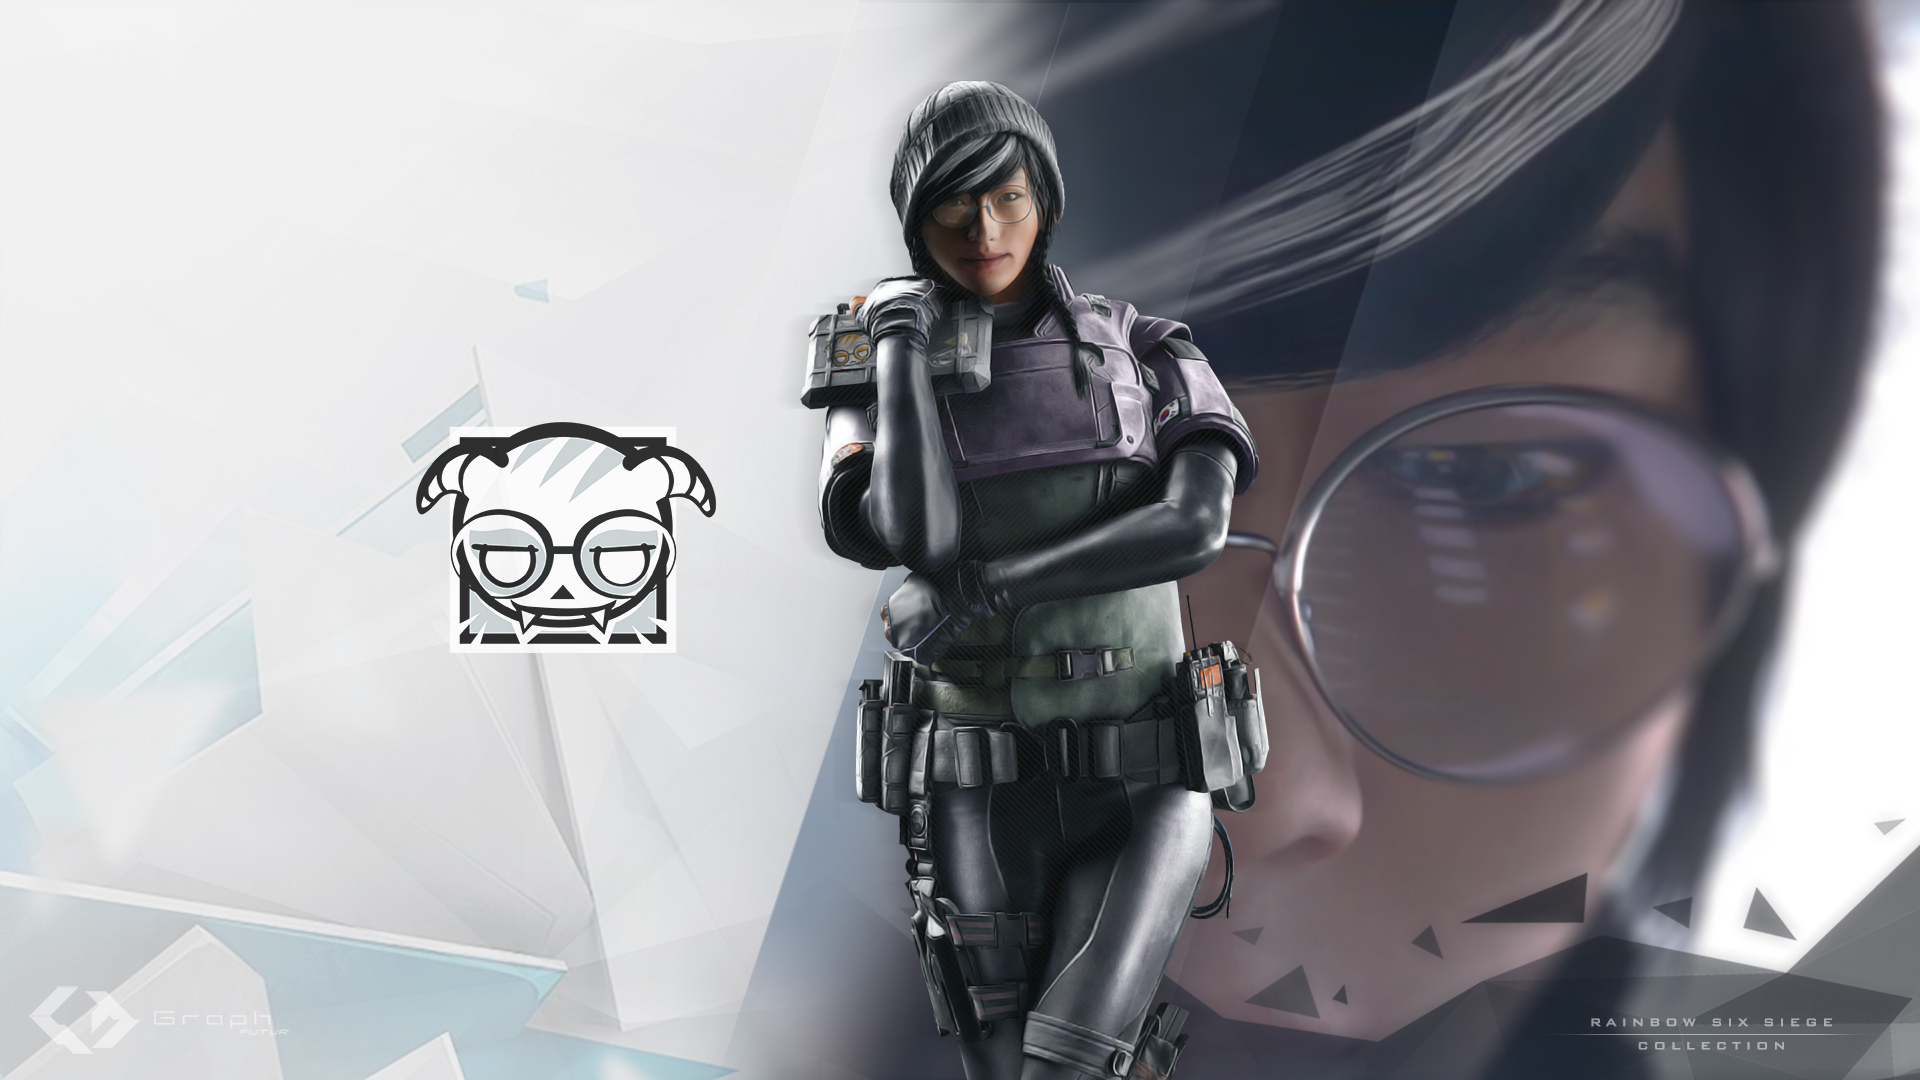 Rainbow Six Siege Dokkaebi Collection By Graphfutur On Deviantart